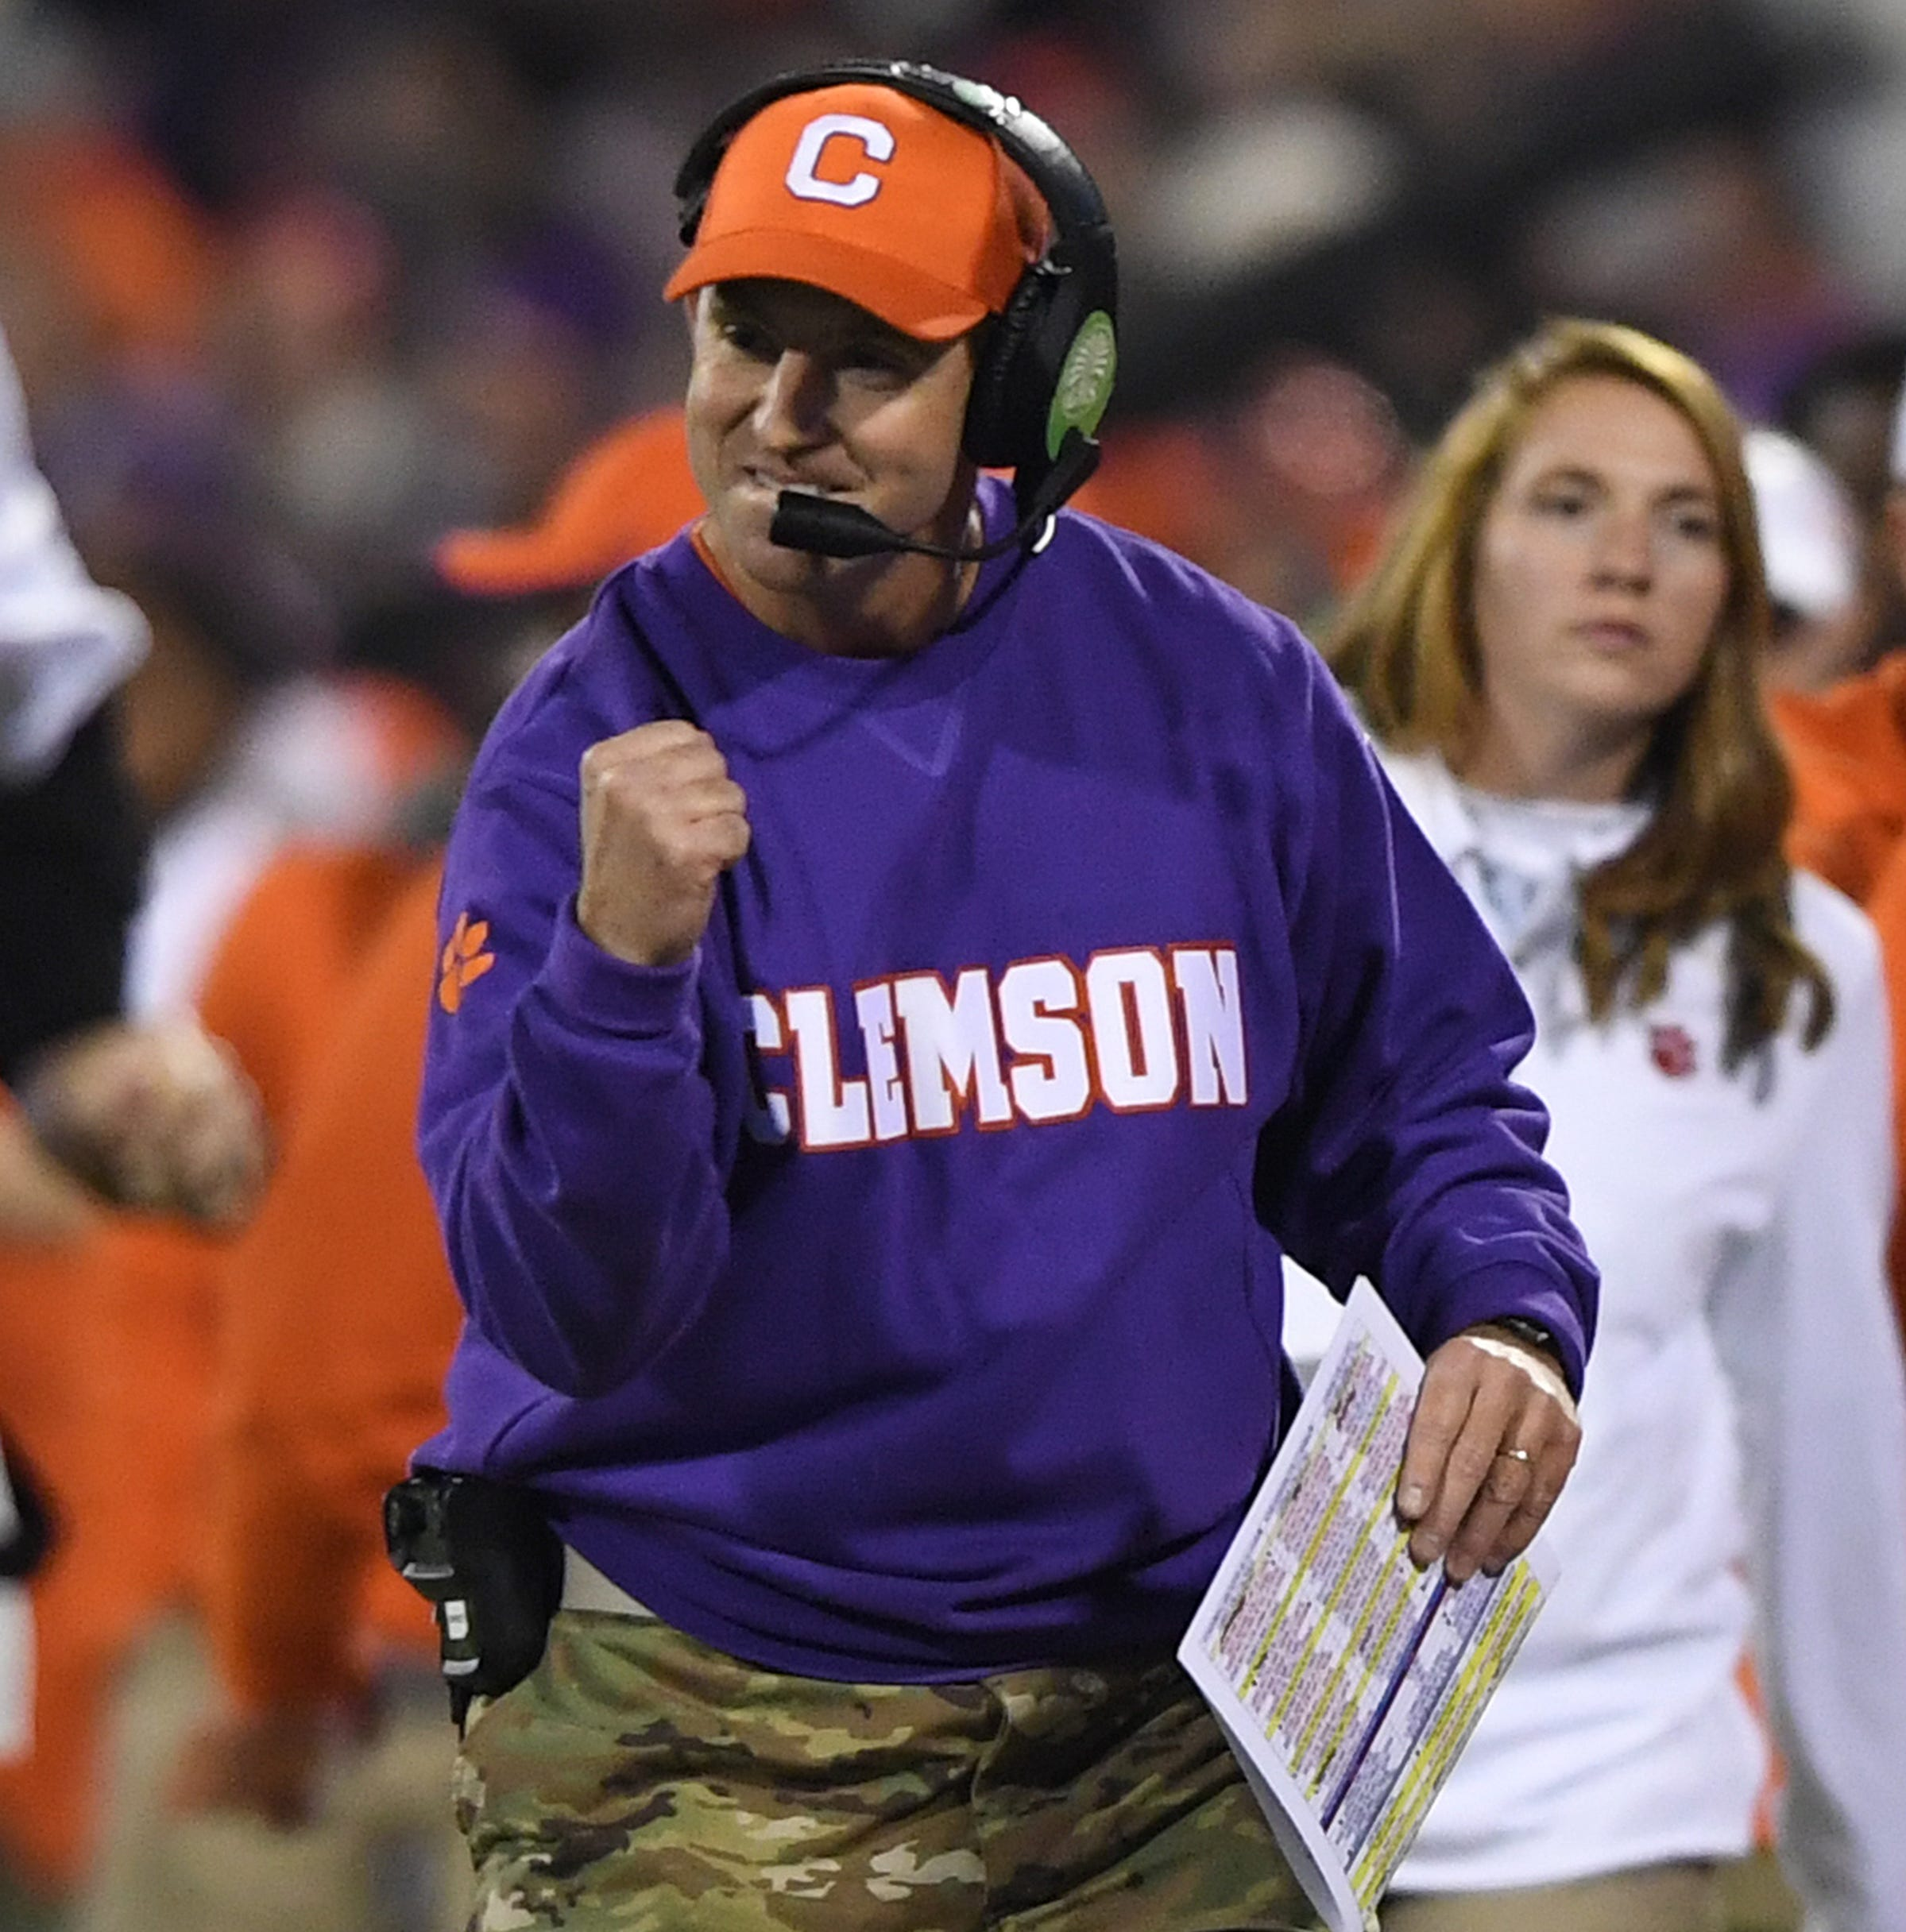 Clemson vs. Notre Dame has potential to be a memorable Cotton Bowl